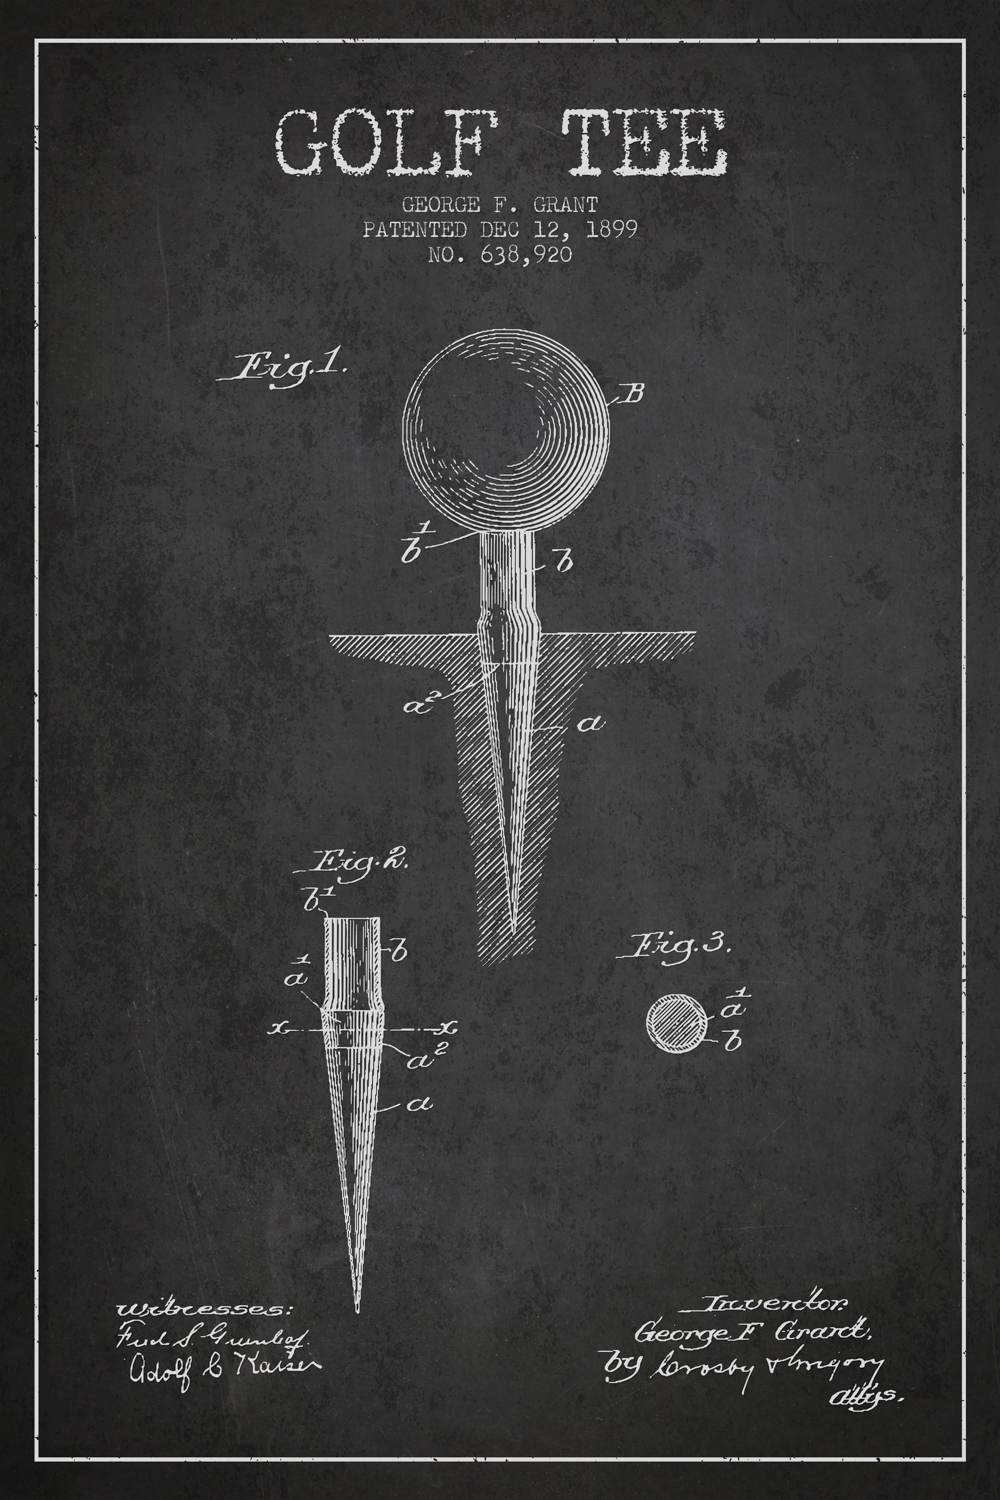 a chalkboard-style patent for the golf tee